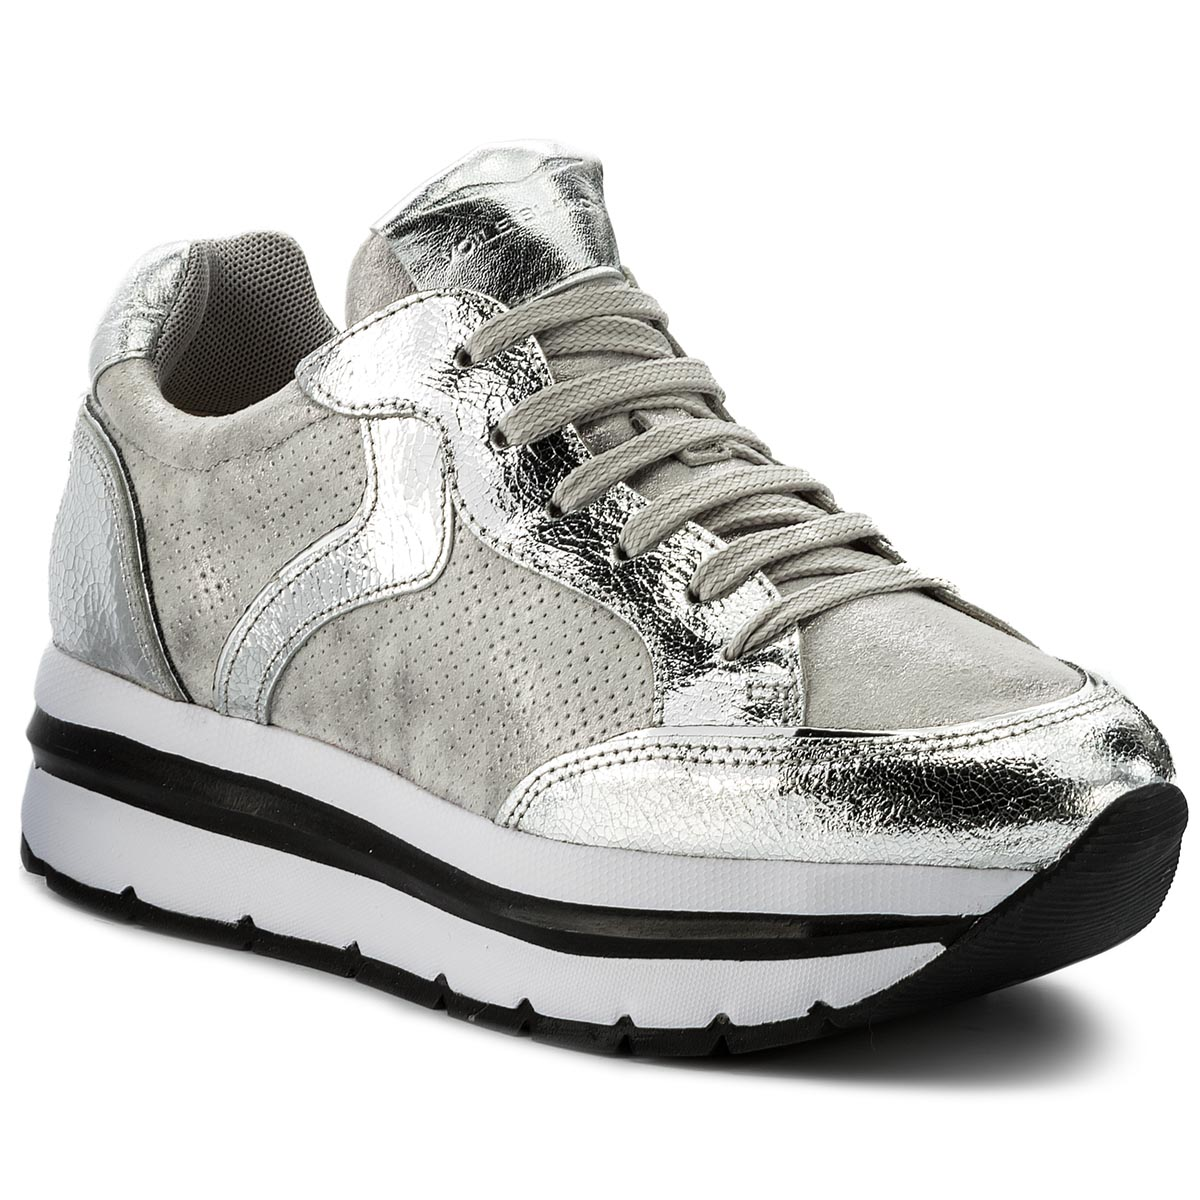 Sneakersy VOILE BLANCHE - Margot Star Crack Lame 0012012388.07.9165 Argento/Inox